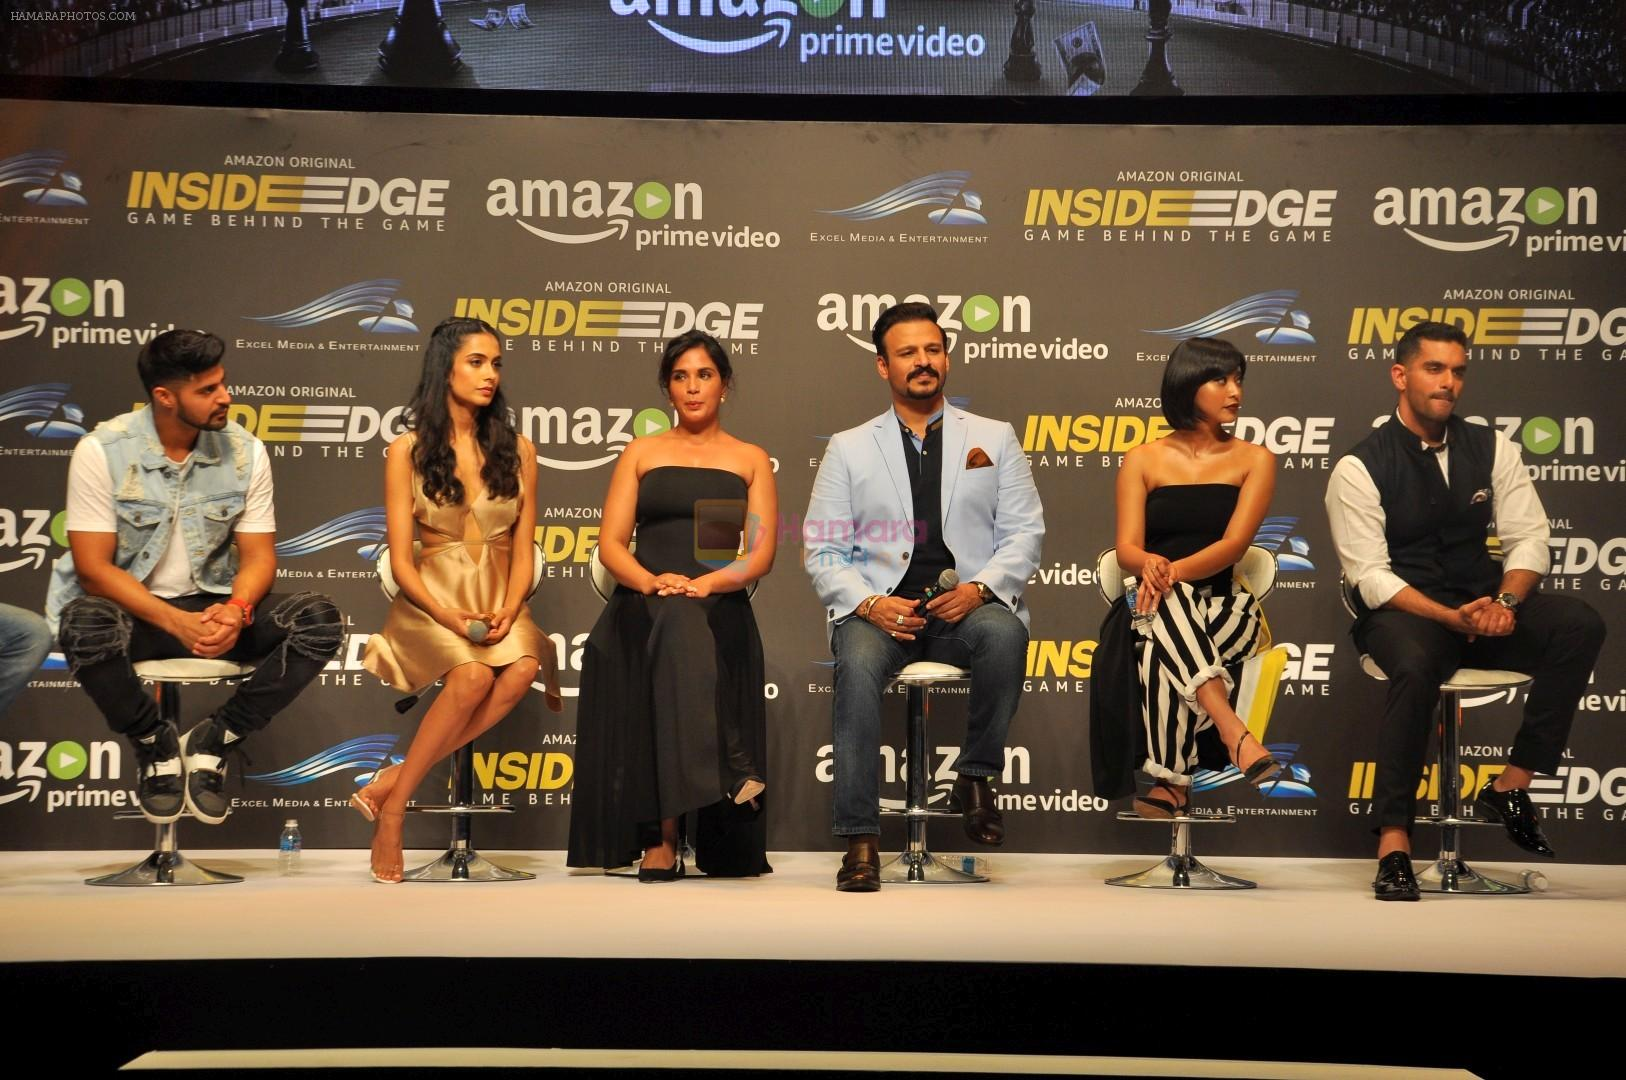 Angad Bedi, Tanuj Virwani, Richa Chadda, Vivek Oberoi, Sayani Gupta at Trailer Launch Of Indiai's 1st Amazon Prime Video Original Series Inside Edge on 16th June 2017